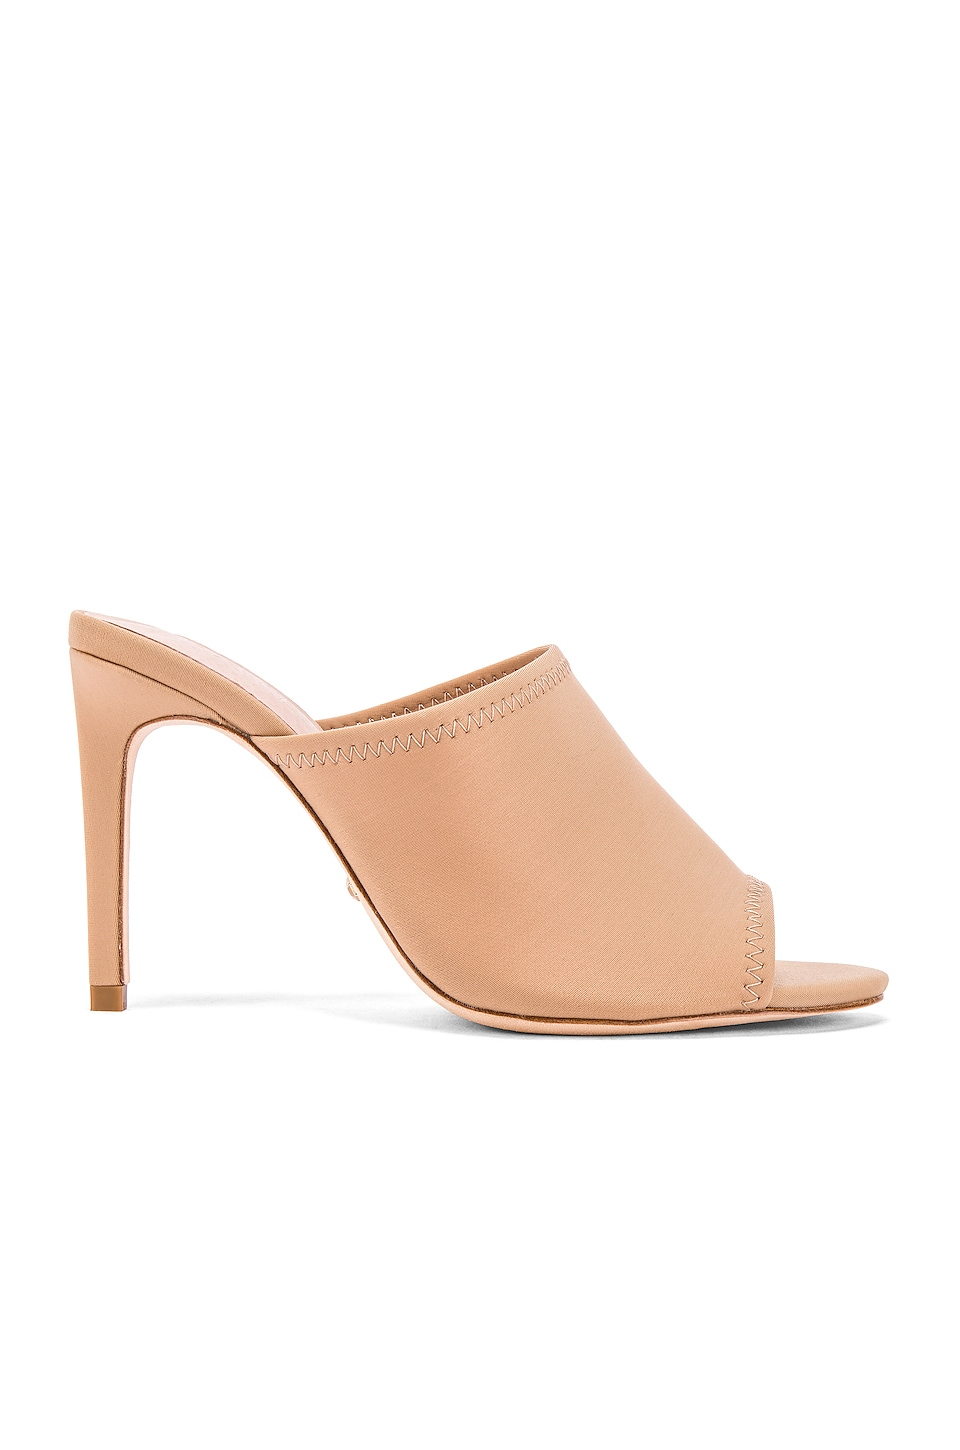 RAYE Bay Heel in Tan